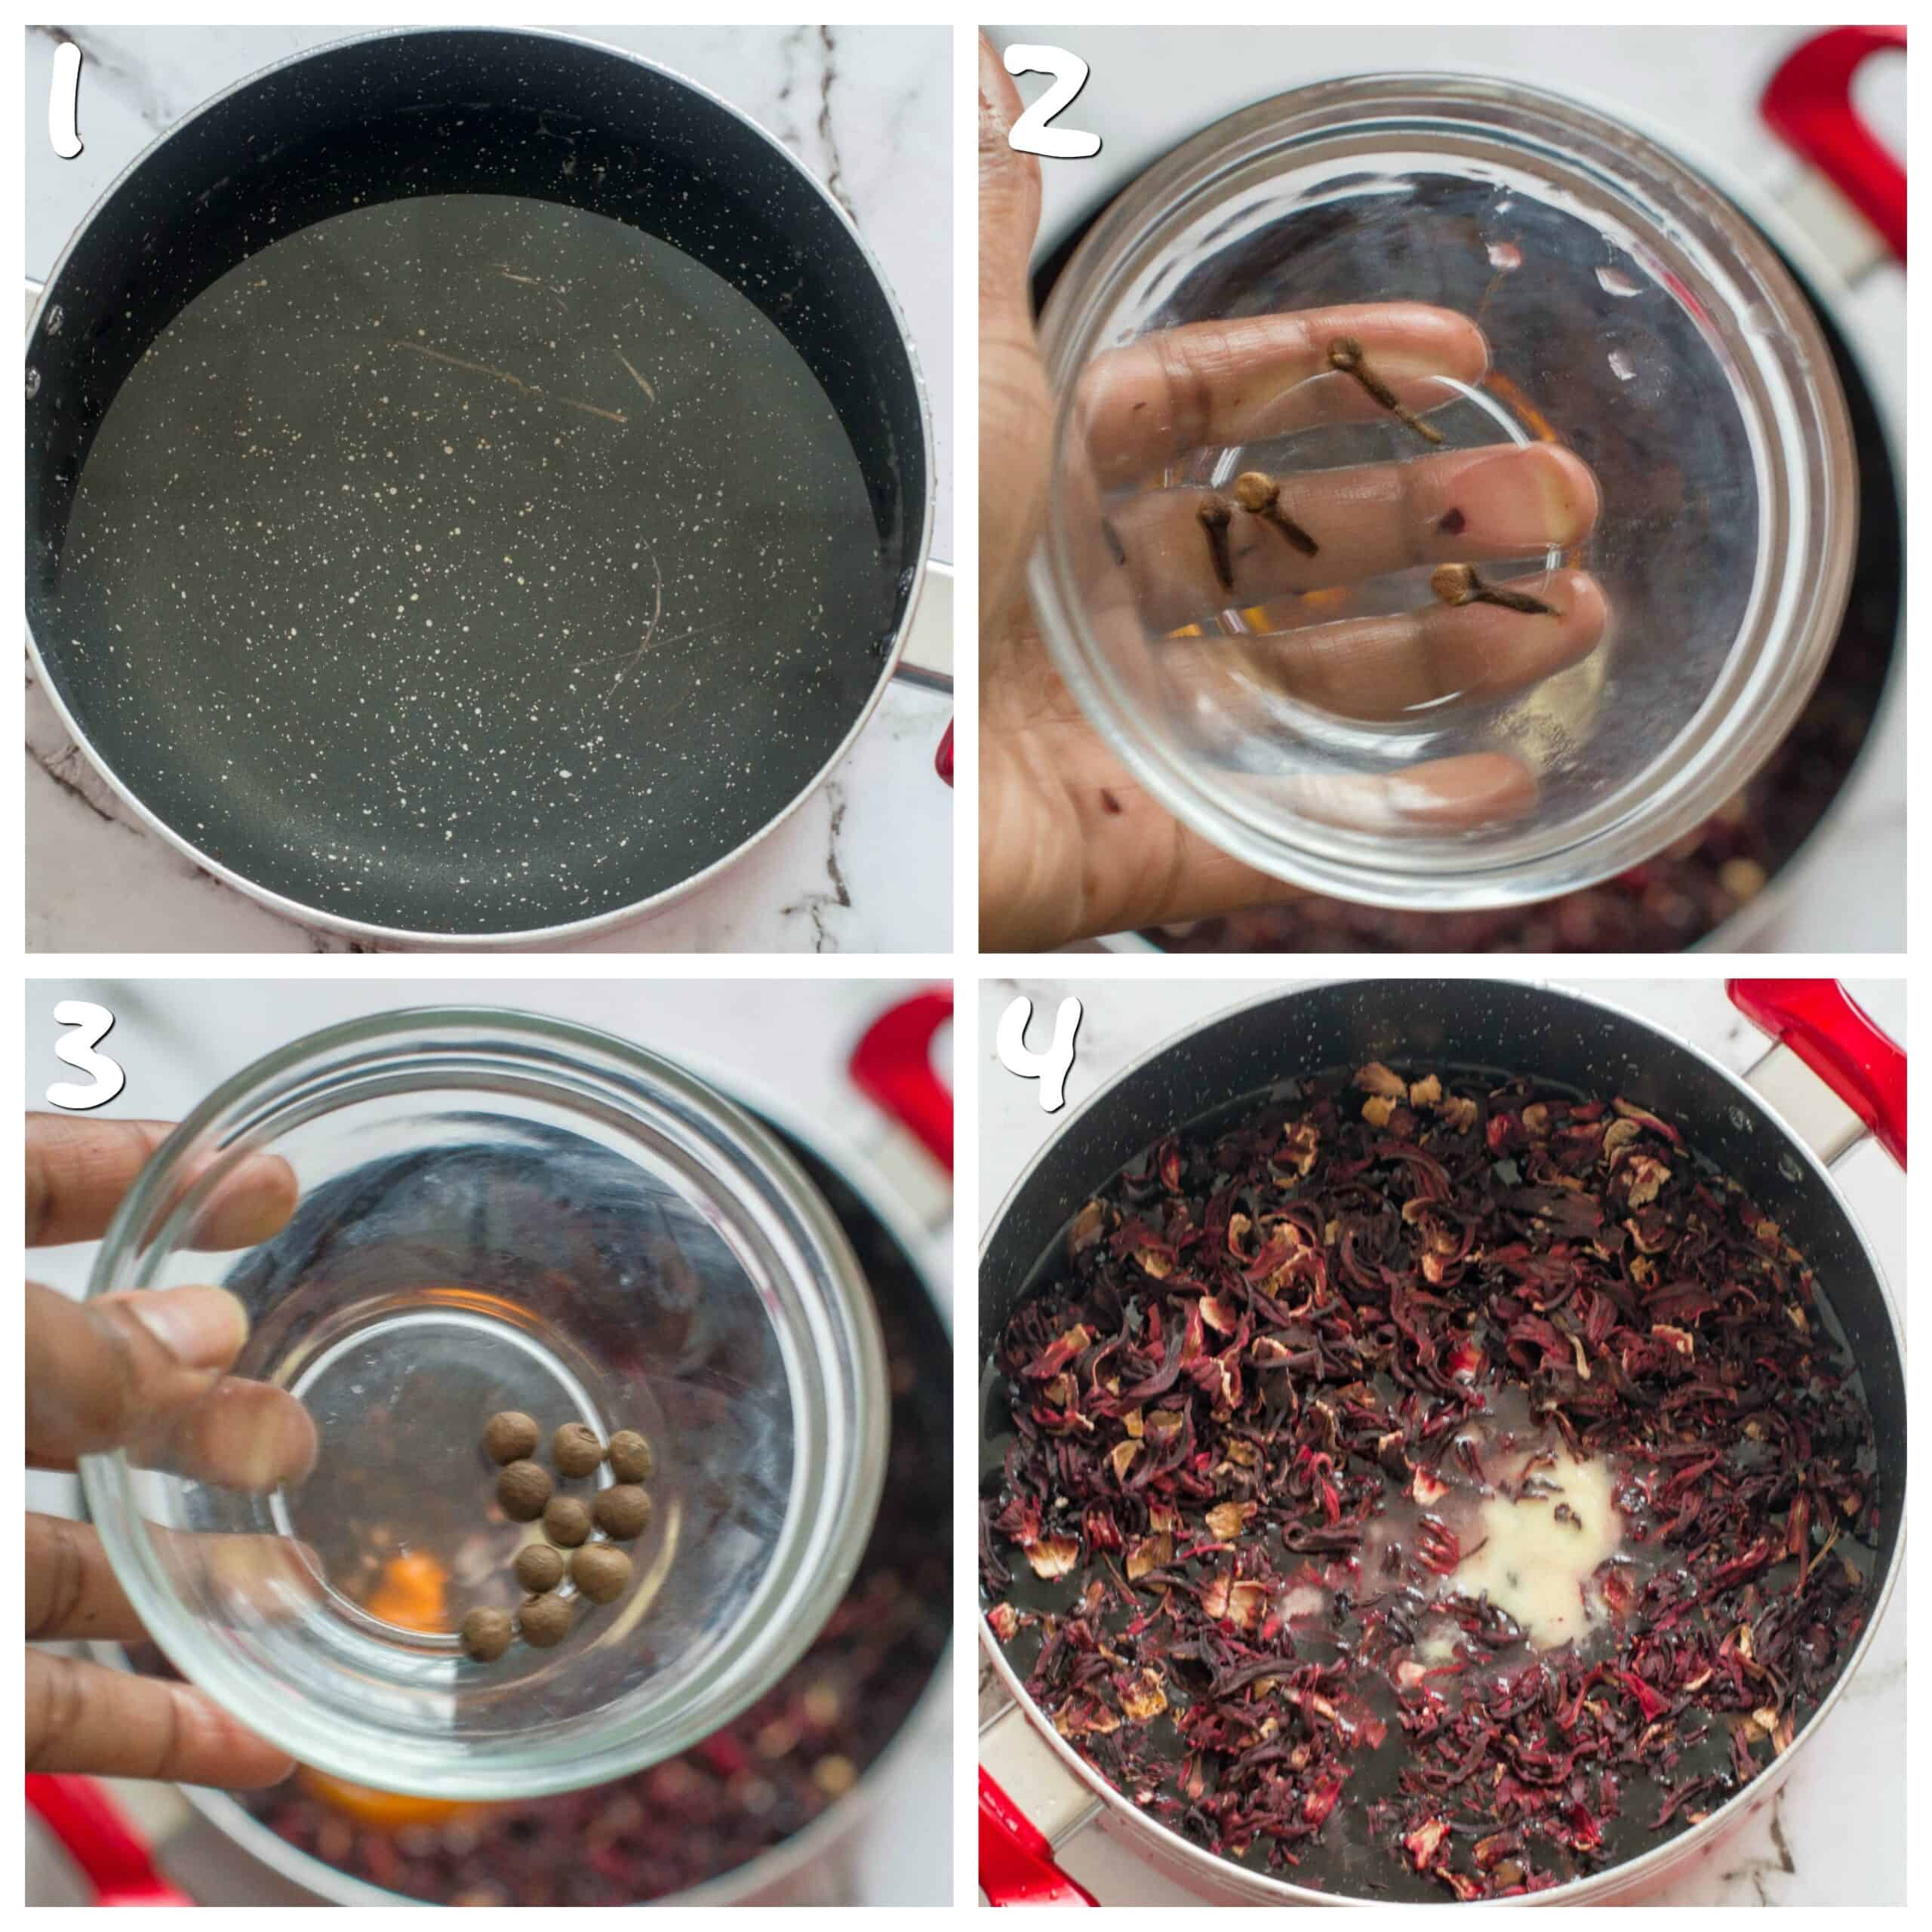 steps 1-4 adding the sorrel and spices